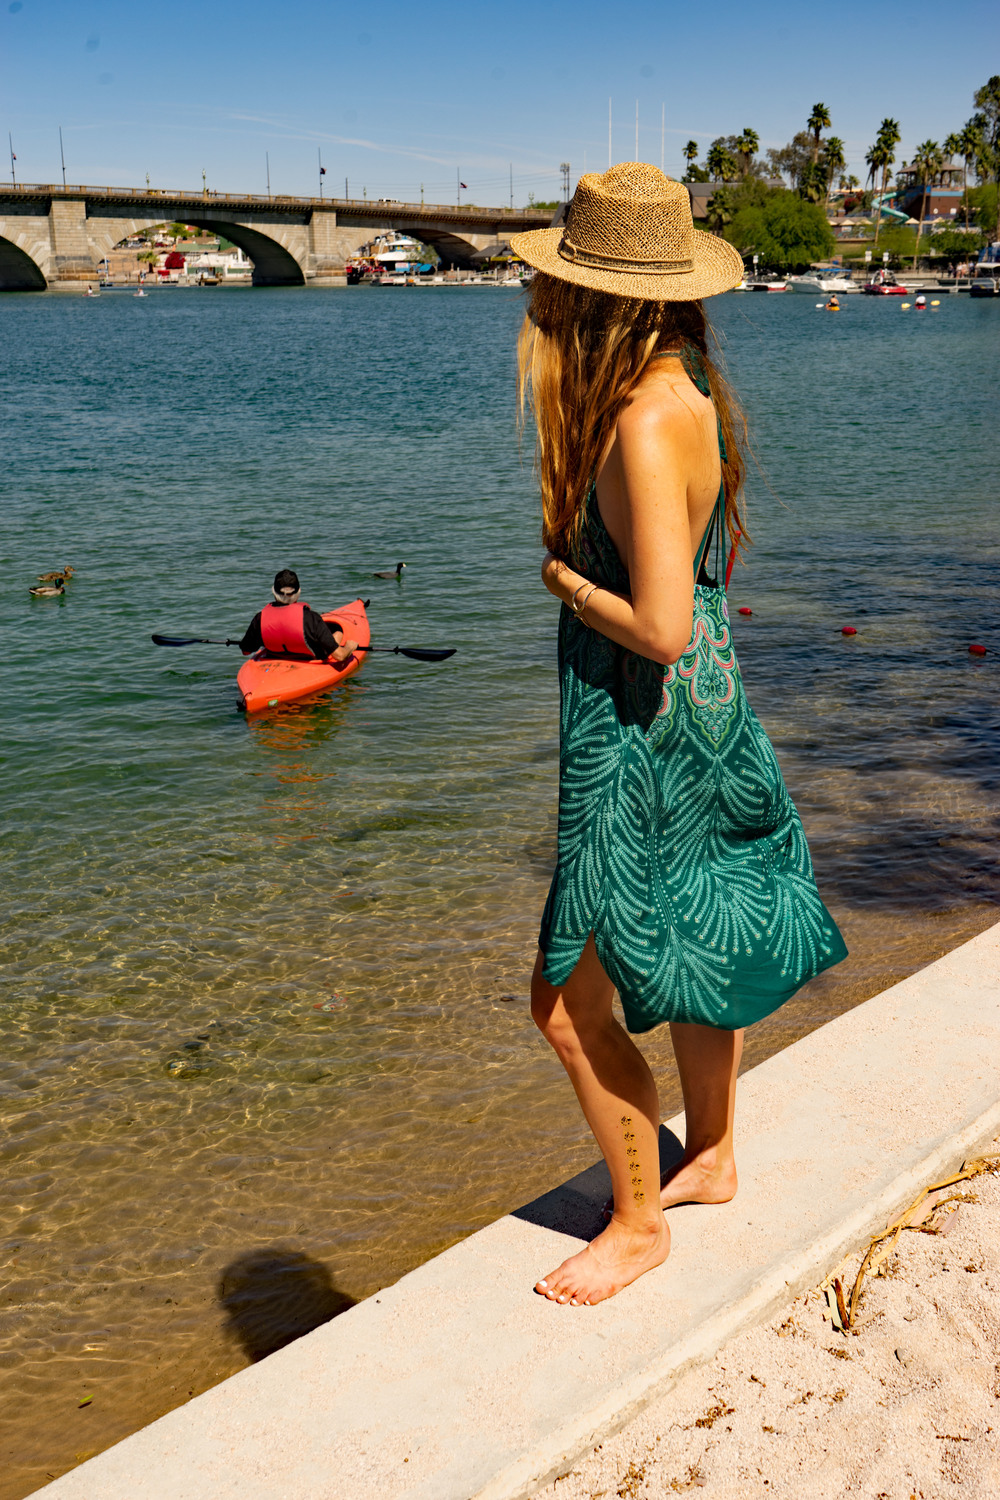 London Bridge, Lake Havasu City, Arizona, Water Wanderer